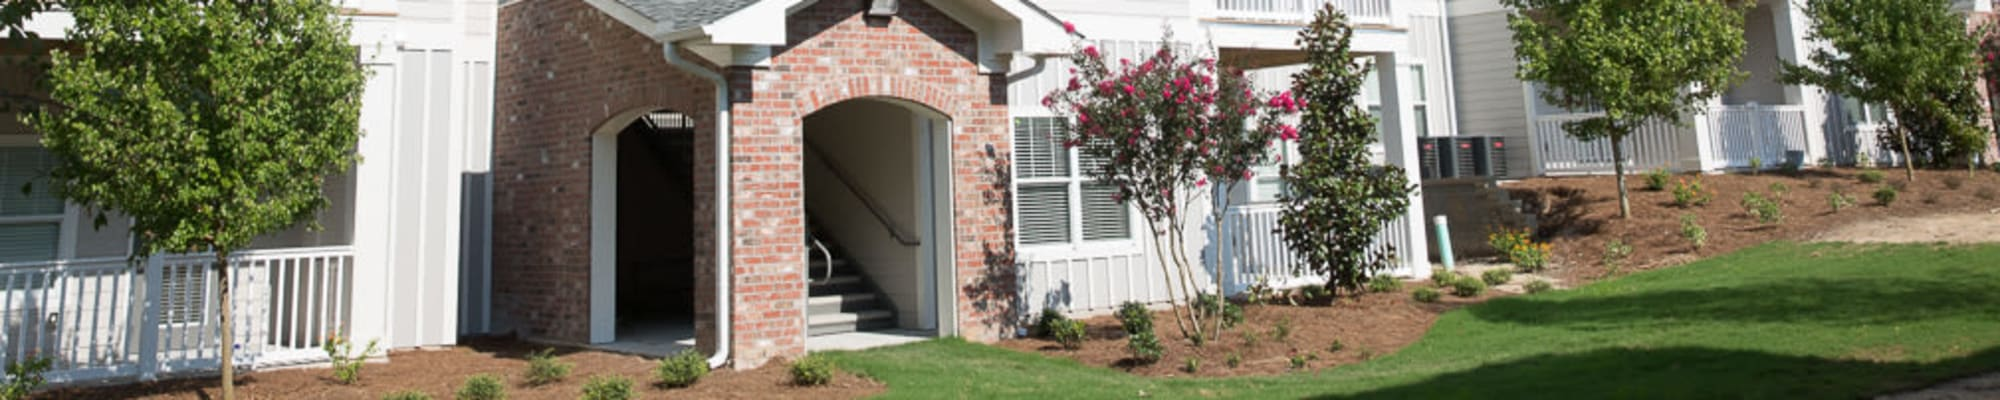 Map and directions to Ansley Commons Apartment Homes in Ladson, South Carolina